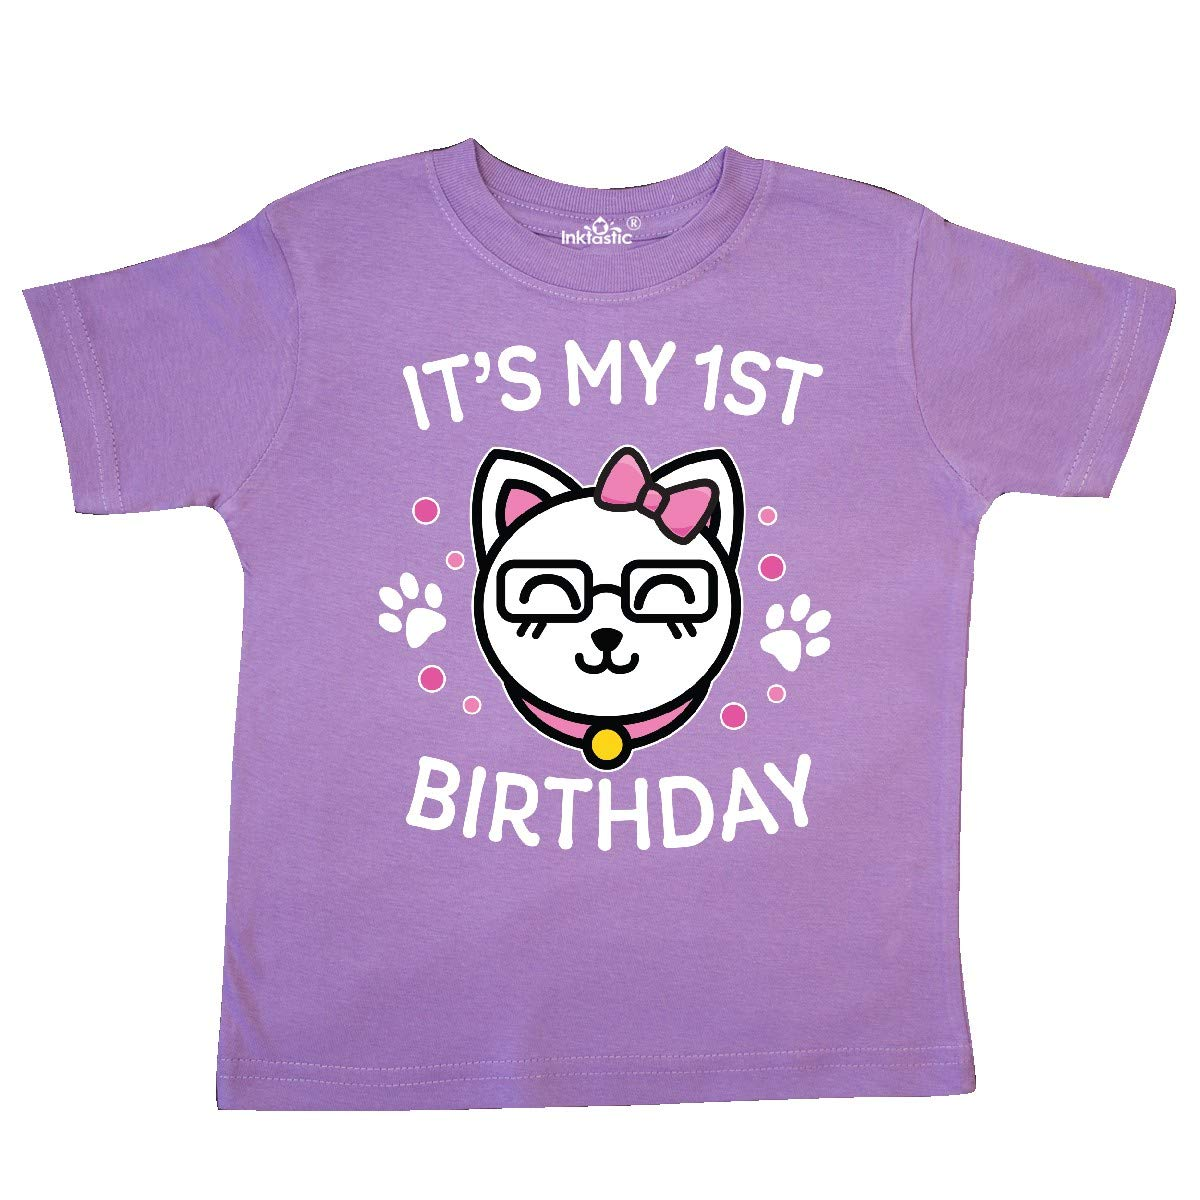 inktastic Its My 1st Birthday with Cat in Glasses Toddler T-Shirt